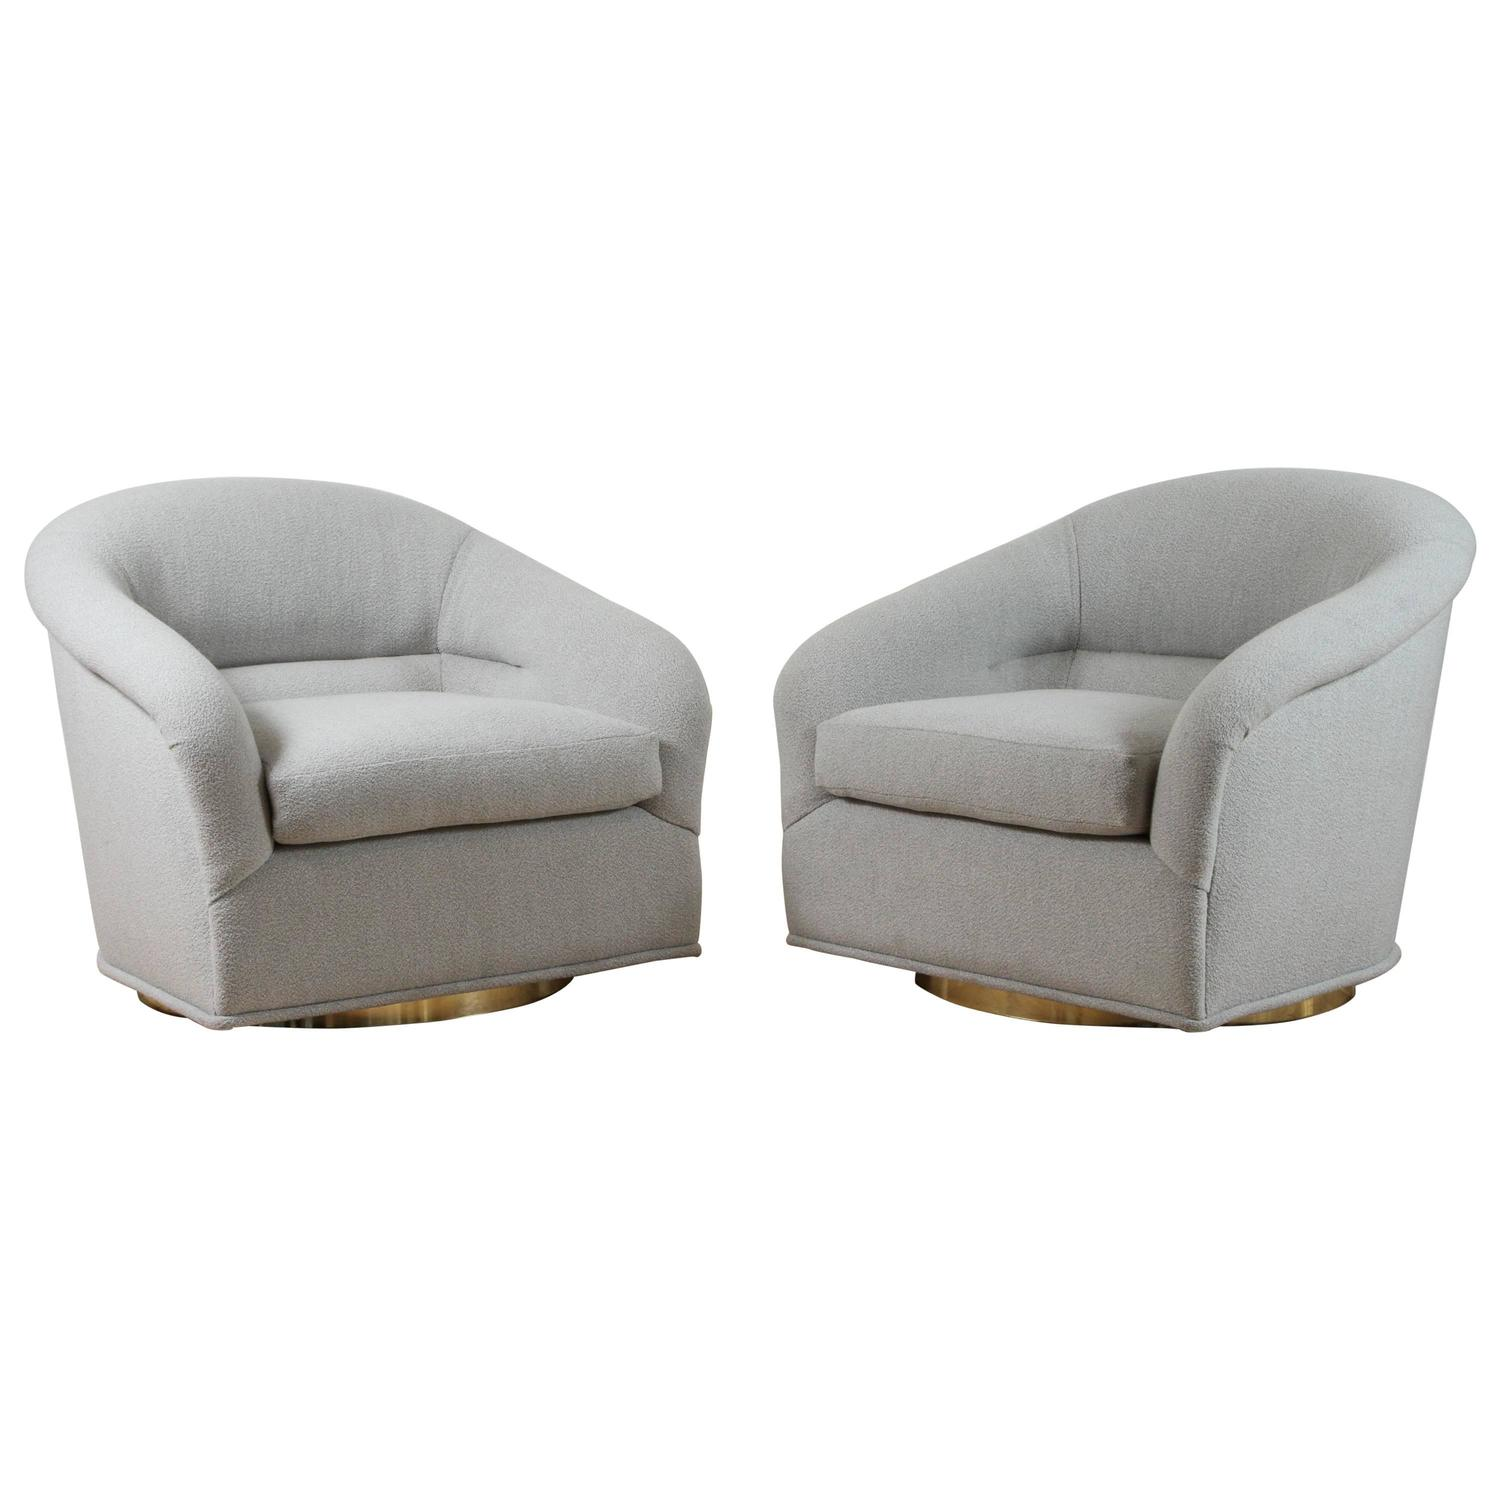 Pair of Huxley Swivel Chairs by Lawson Fenning For Sale at 1stdibs